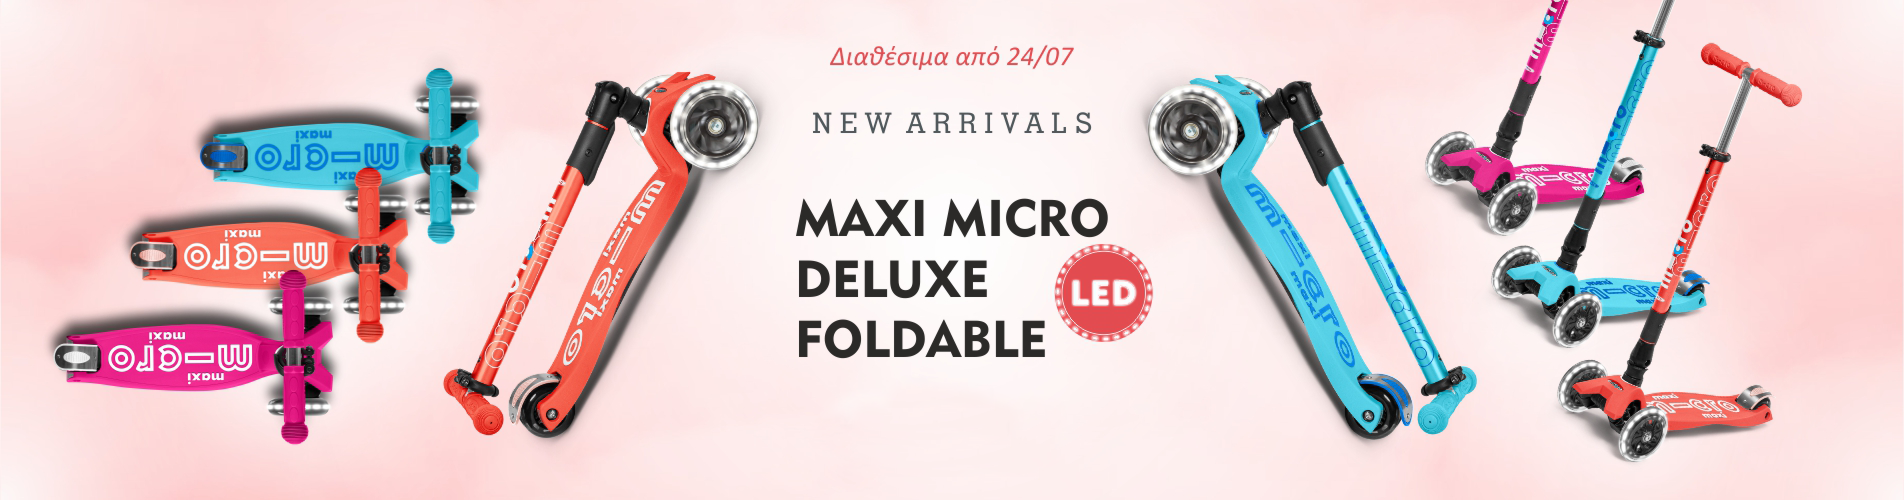 Maxi Micro Deluxe Foldable LED